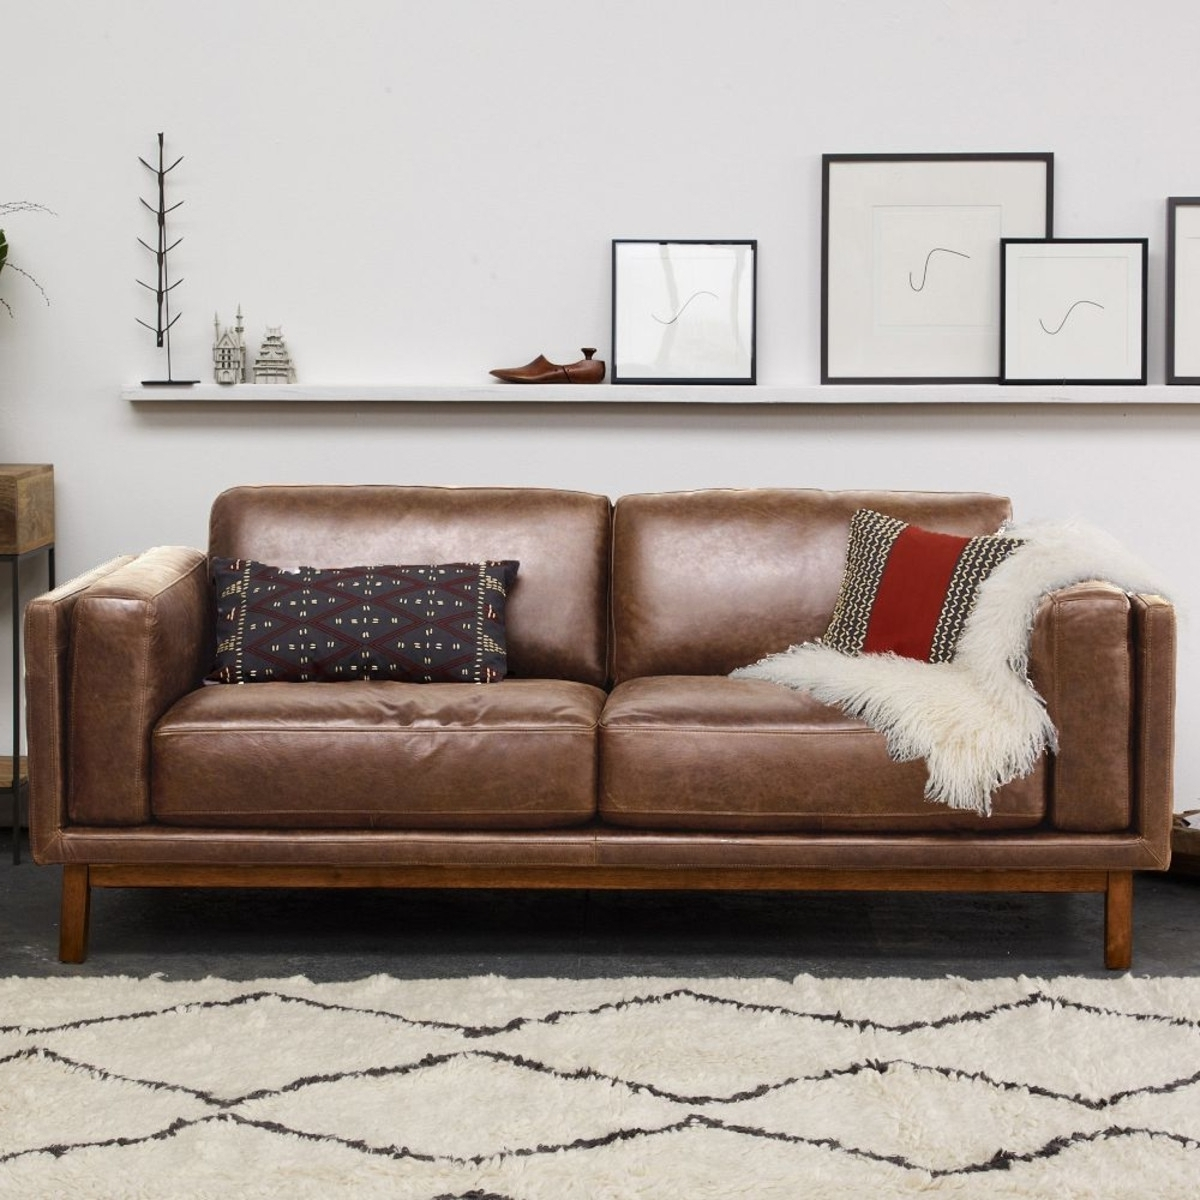 Recent Sectional Sofas At Bad Boy Throughout Bad Boy Furniture Sectional Sofas • Sectional Sofa (View 11 of 15)